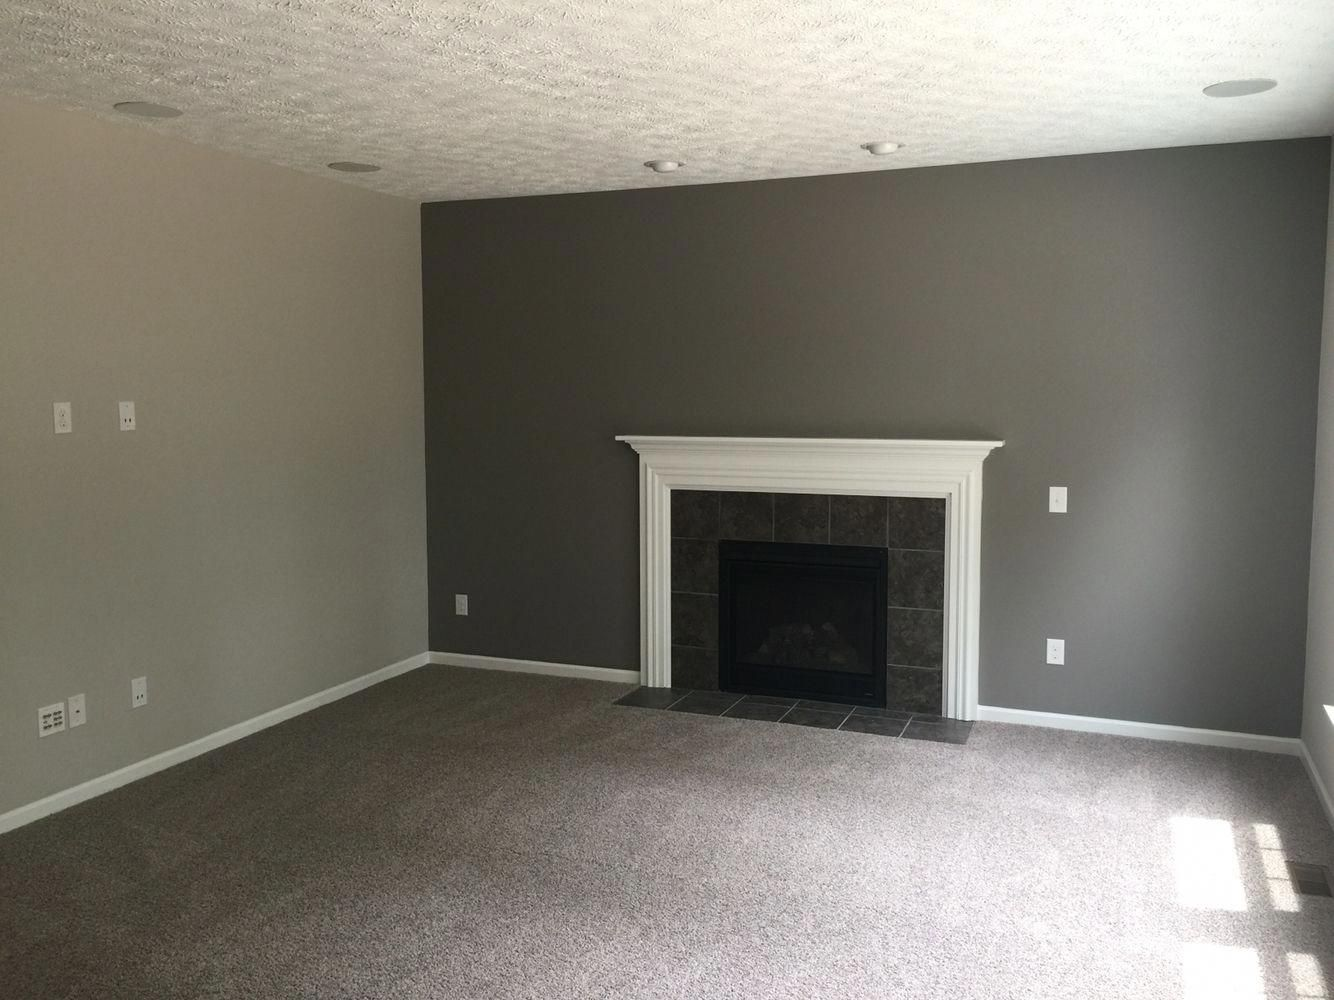 Our Carpet Is Mohawk Brand In Rainswept Gray The Dark Gray Accent Wall Is Done In Sh Grey Accent Wall Living Room Accent Walls In Living Room Grey Accent Wall